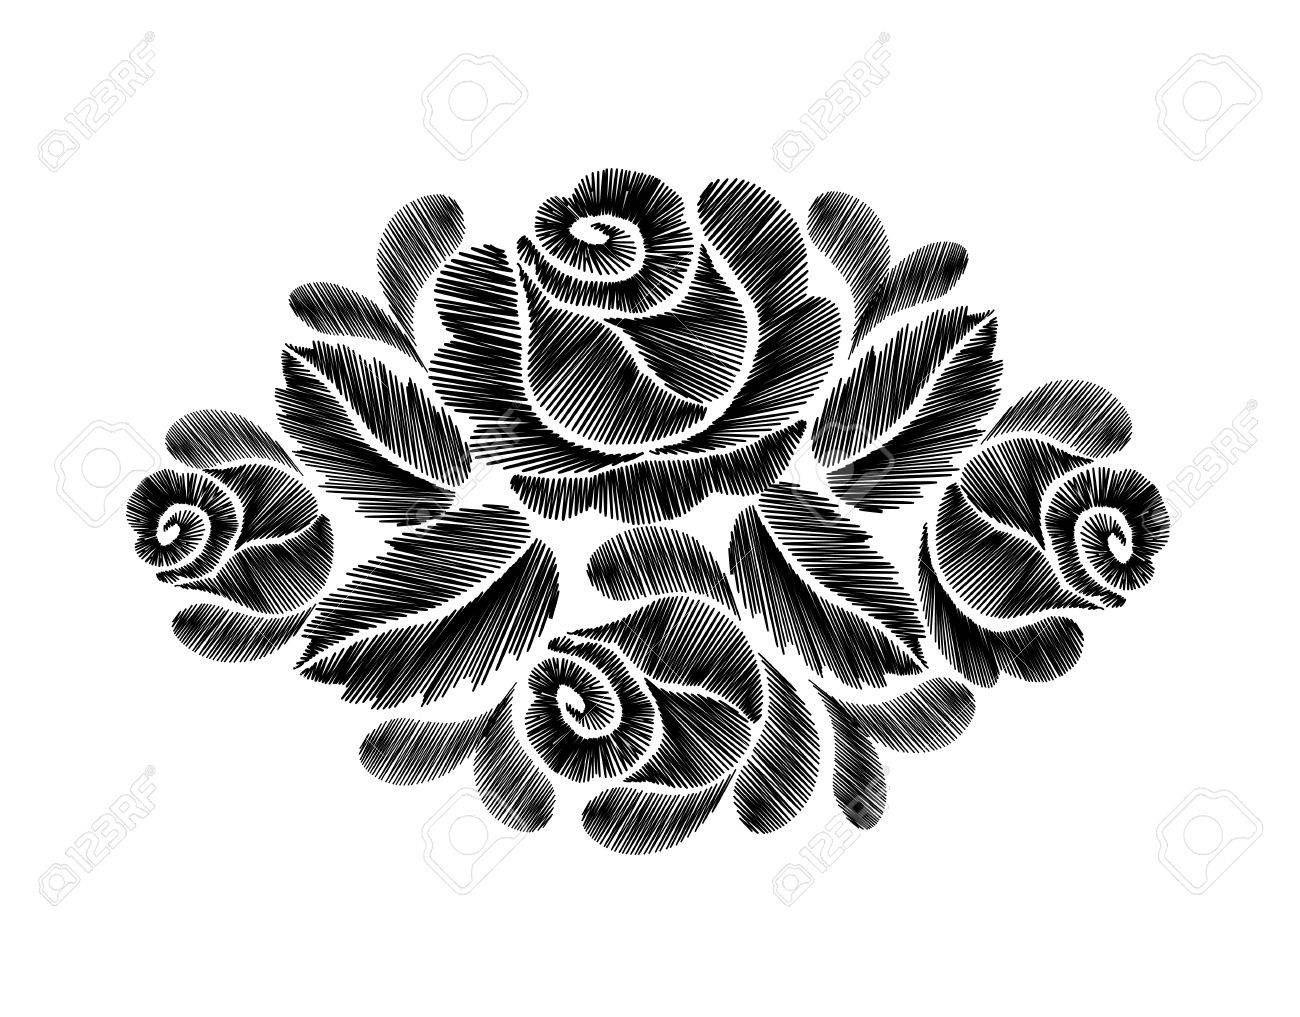 Black Roses Embroidery On White Background Ethnic Flowers Neck Line Flower Design Graphics Fashion Wearing